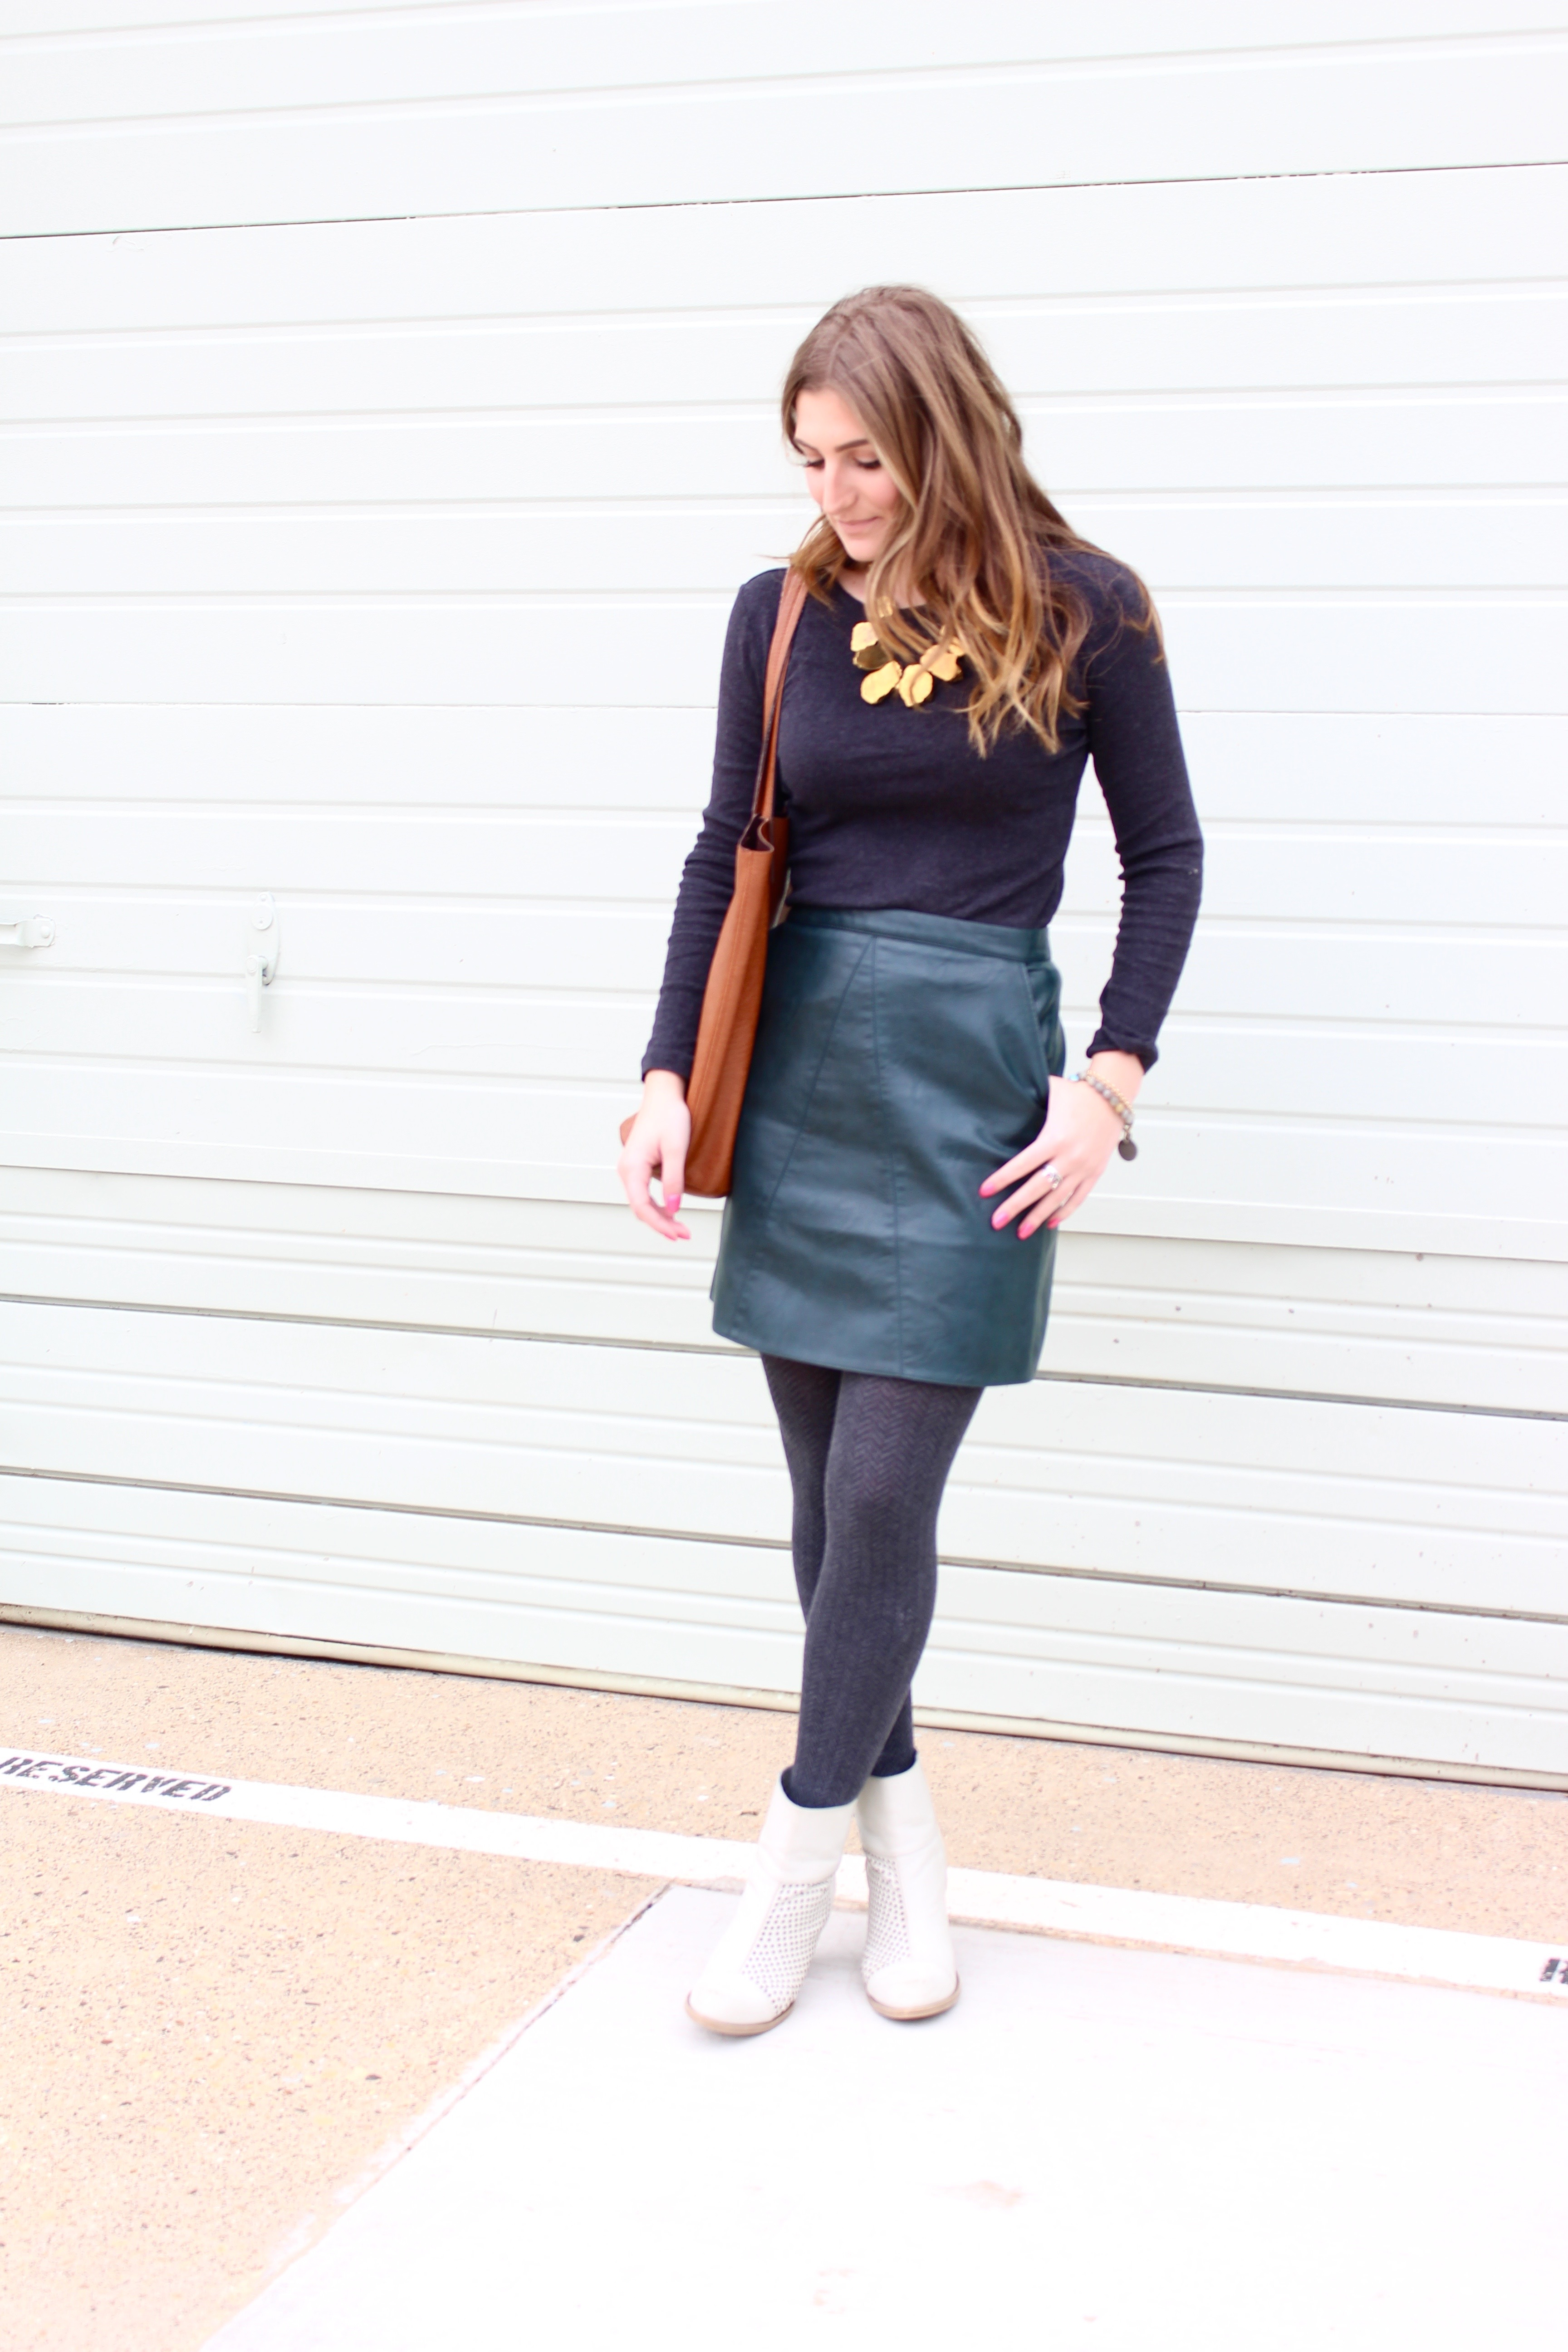 zara leather skirt super affordable - Green Leather Skirt by popular Texas fashion blogger Audrey Madison Stowe